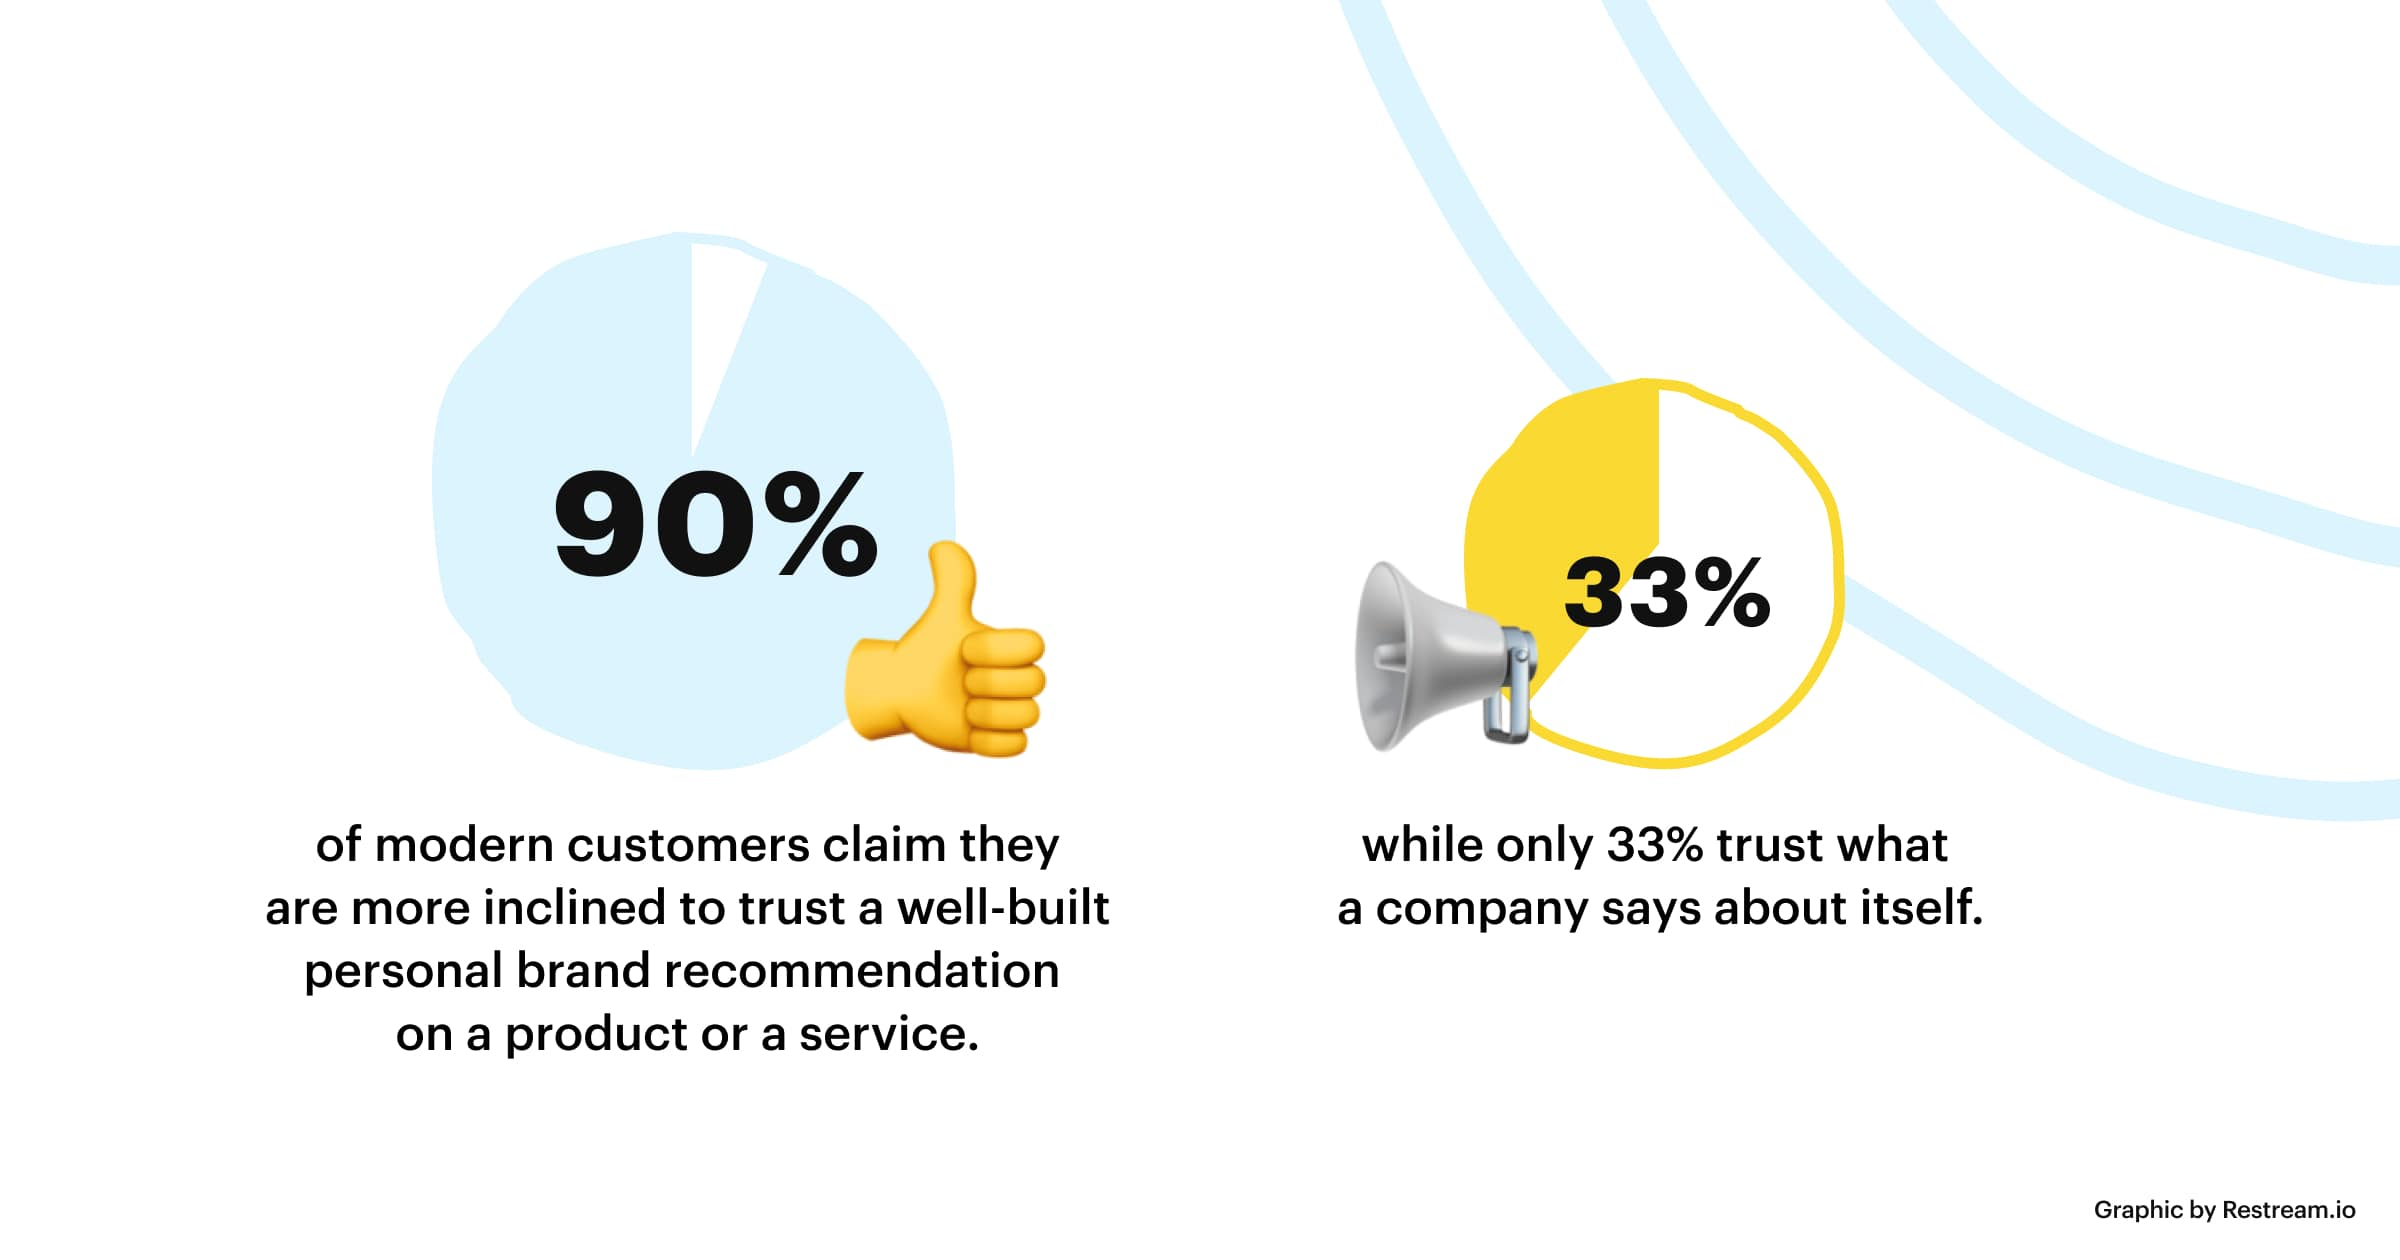 Customers claim they trust to a personal brand recommendation on a product or a service